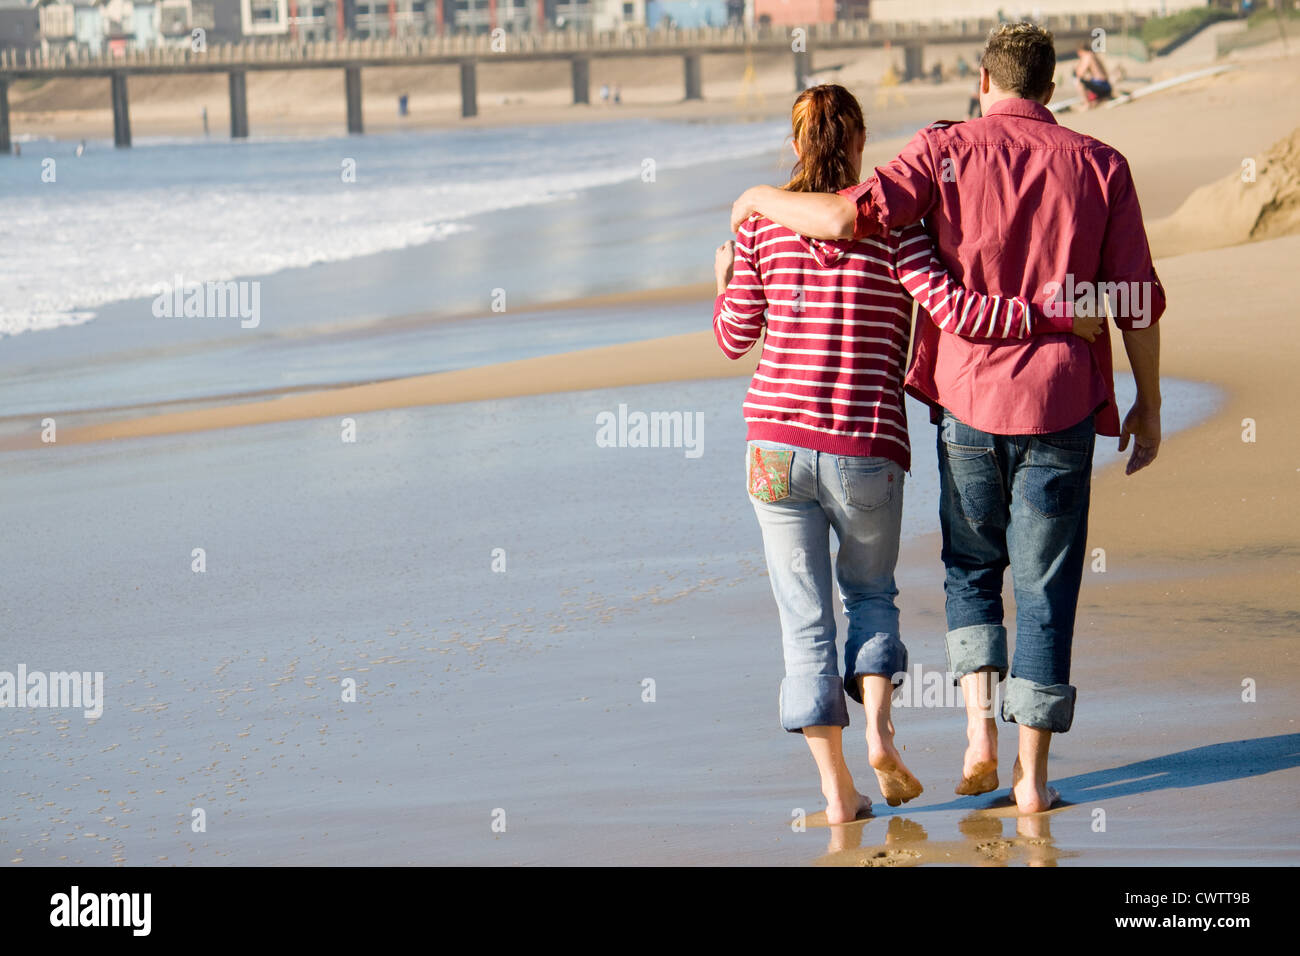 young couple walking on beach - Stock Image